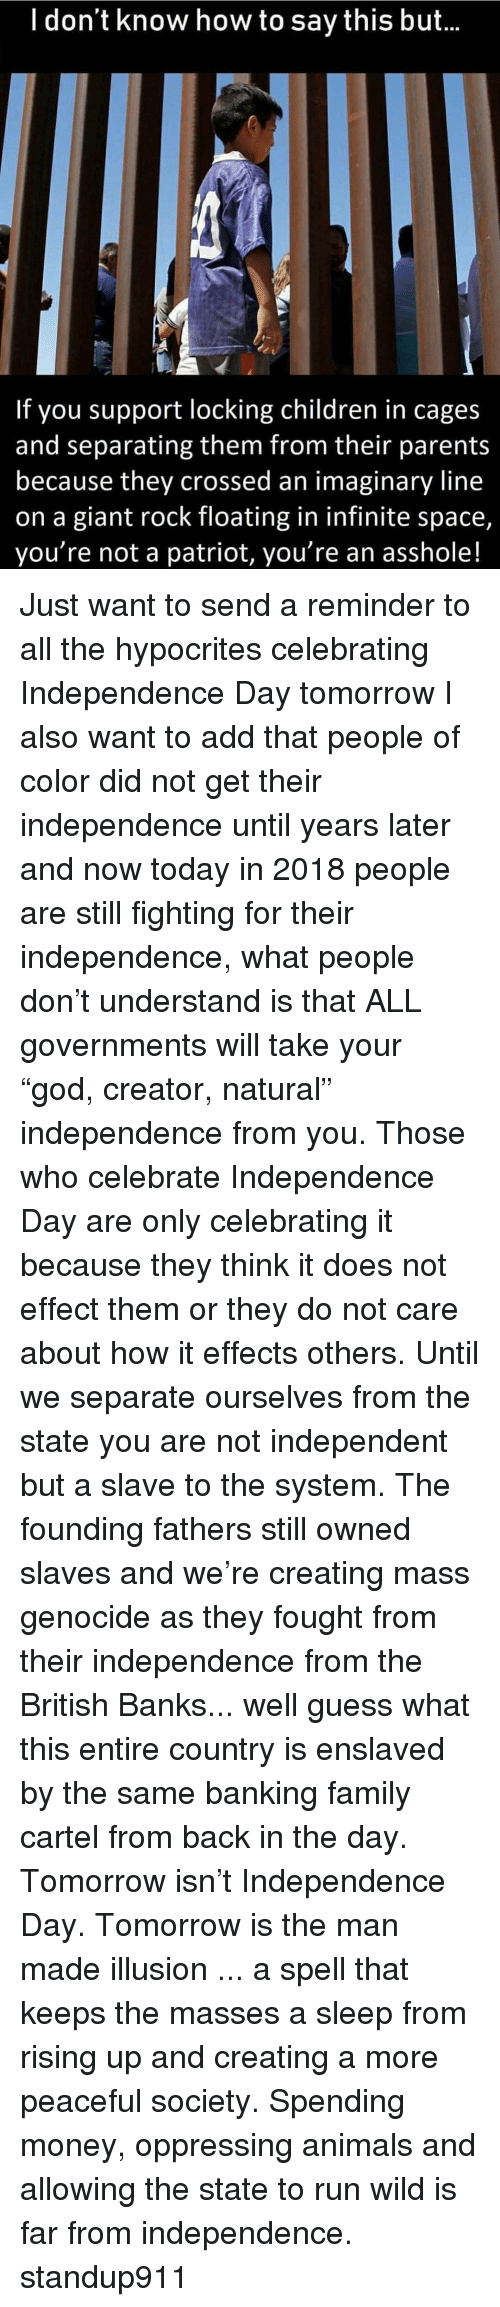 "Animals, Children, and Family: l don't know how to say this but...  If you support locking children in cages  and separating them from their parents  because they crossed an imaginary line  on a giant rock floating in infinite space,  you're not a patriot, you're an asshole! Just want to send a reminder to all the hypocrites celebrating Independence Day tomorrow I also want to add that people of color did not get their independence until years later and now today in 2018 people are still fighting for their independence, what people don't understand is that ALL governments will take your ""god, creator, natural"" independence from you. Those who celebrate Independence Day are only celebrating it because they think it does not effect them or they do not care about how it effects others. Until we separate ourselves from the state you are not independent but a slave to the system. The founding fathers still owned slaves and we're creating mass genocide as they fought from their independence from the British Banks... well guess what this entire country is enslaved by the same banking family cartel from back in the day. Tomorrow isn't Independence Day. Tomorrow is the man made illusion ... a spell that keeps the masses a sleep from rising up and creating a more peaceful society. Spending money, oppressing animals and allowing the state to run wild is far from independence. standup911"